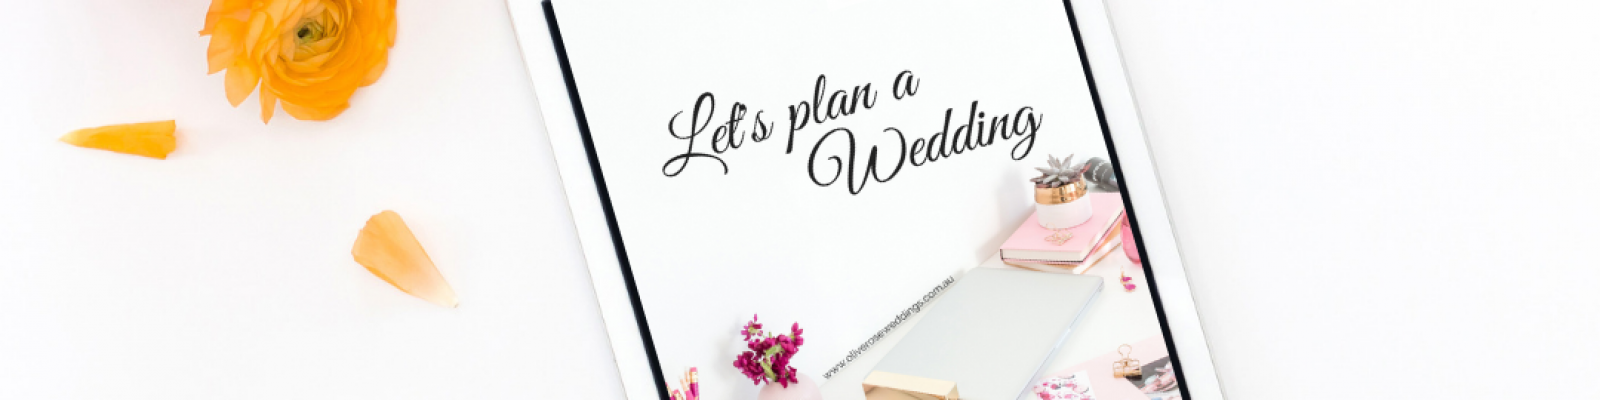 How to Plan a Wedding Workbook